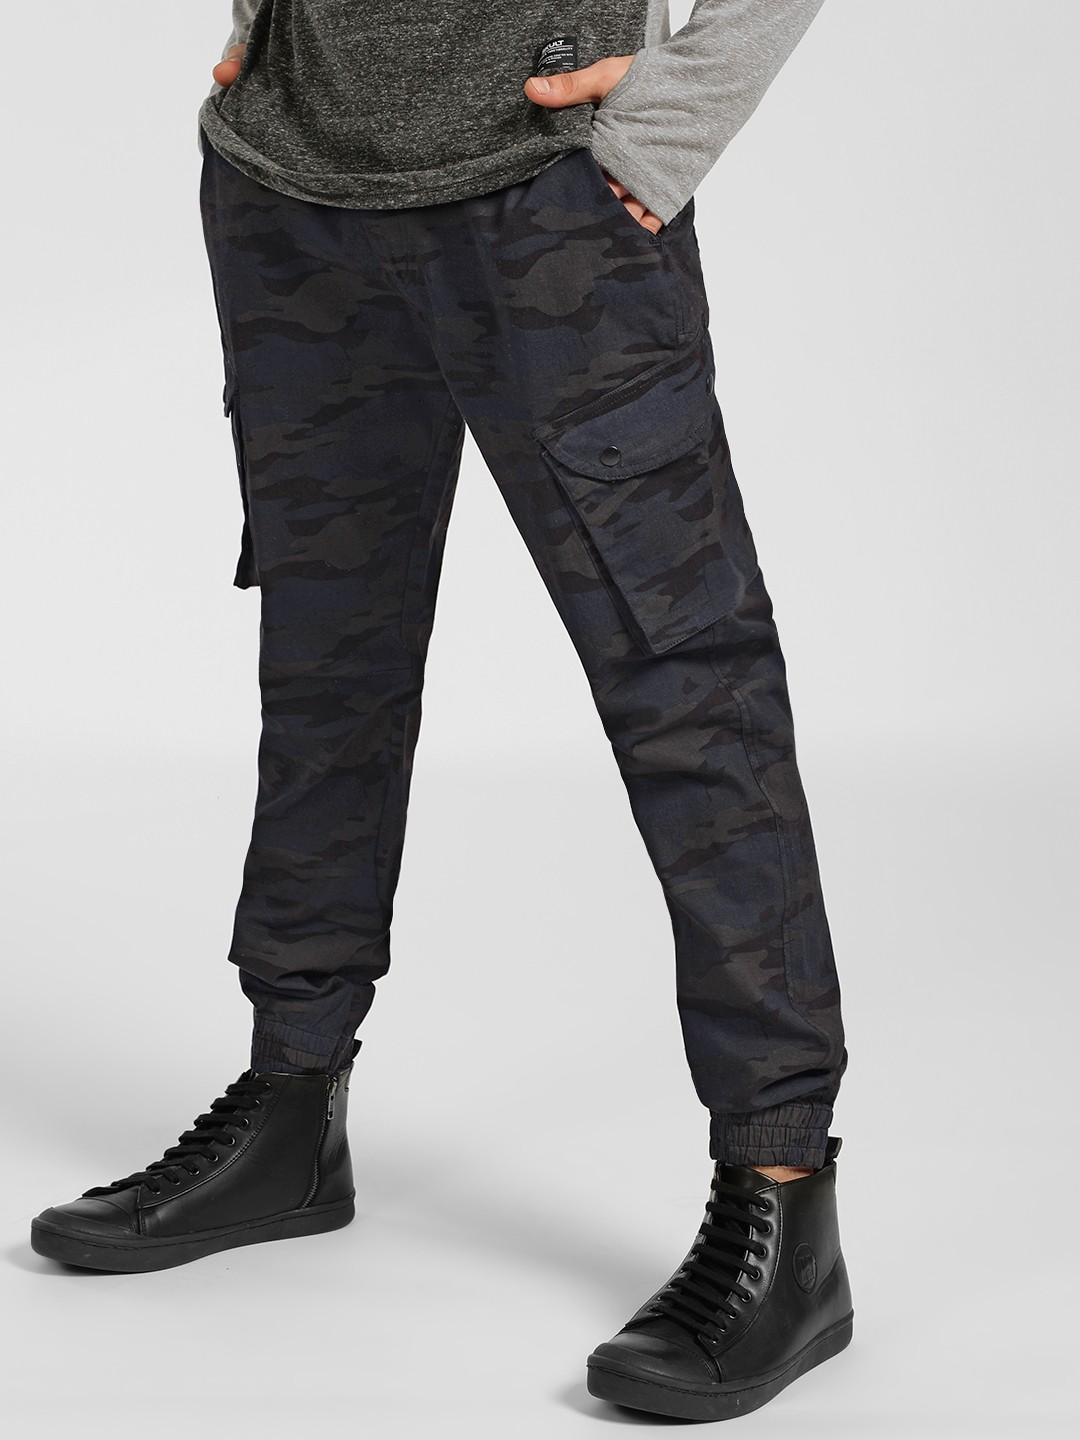 SKULT By Shahid Kapoor Black Camo Print Cargo Trousers 1